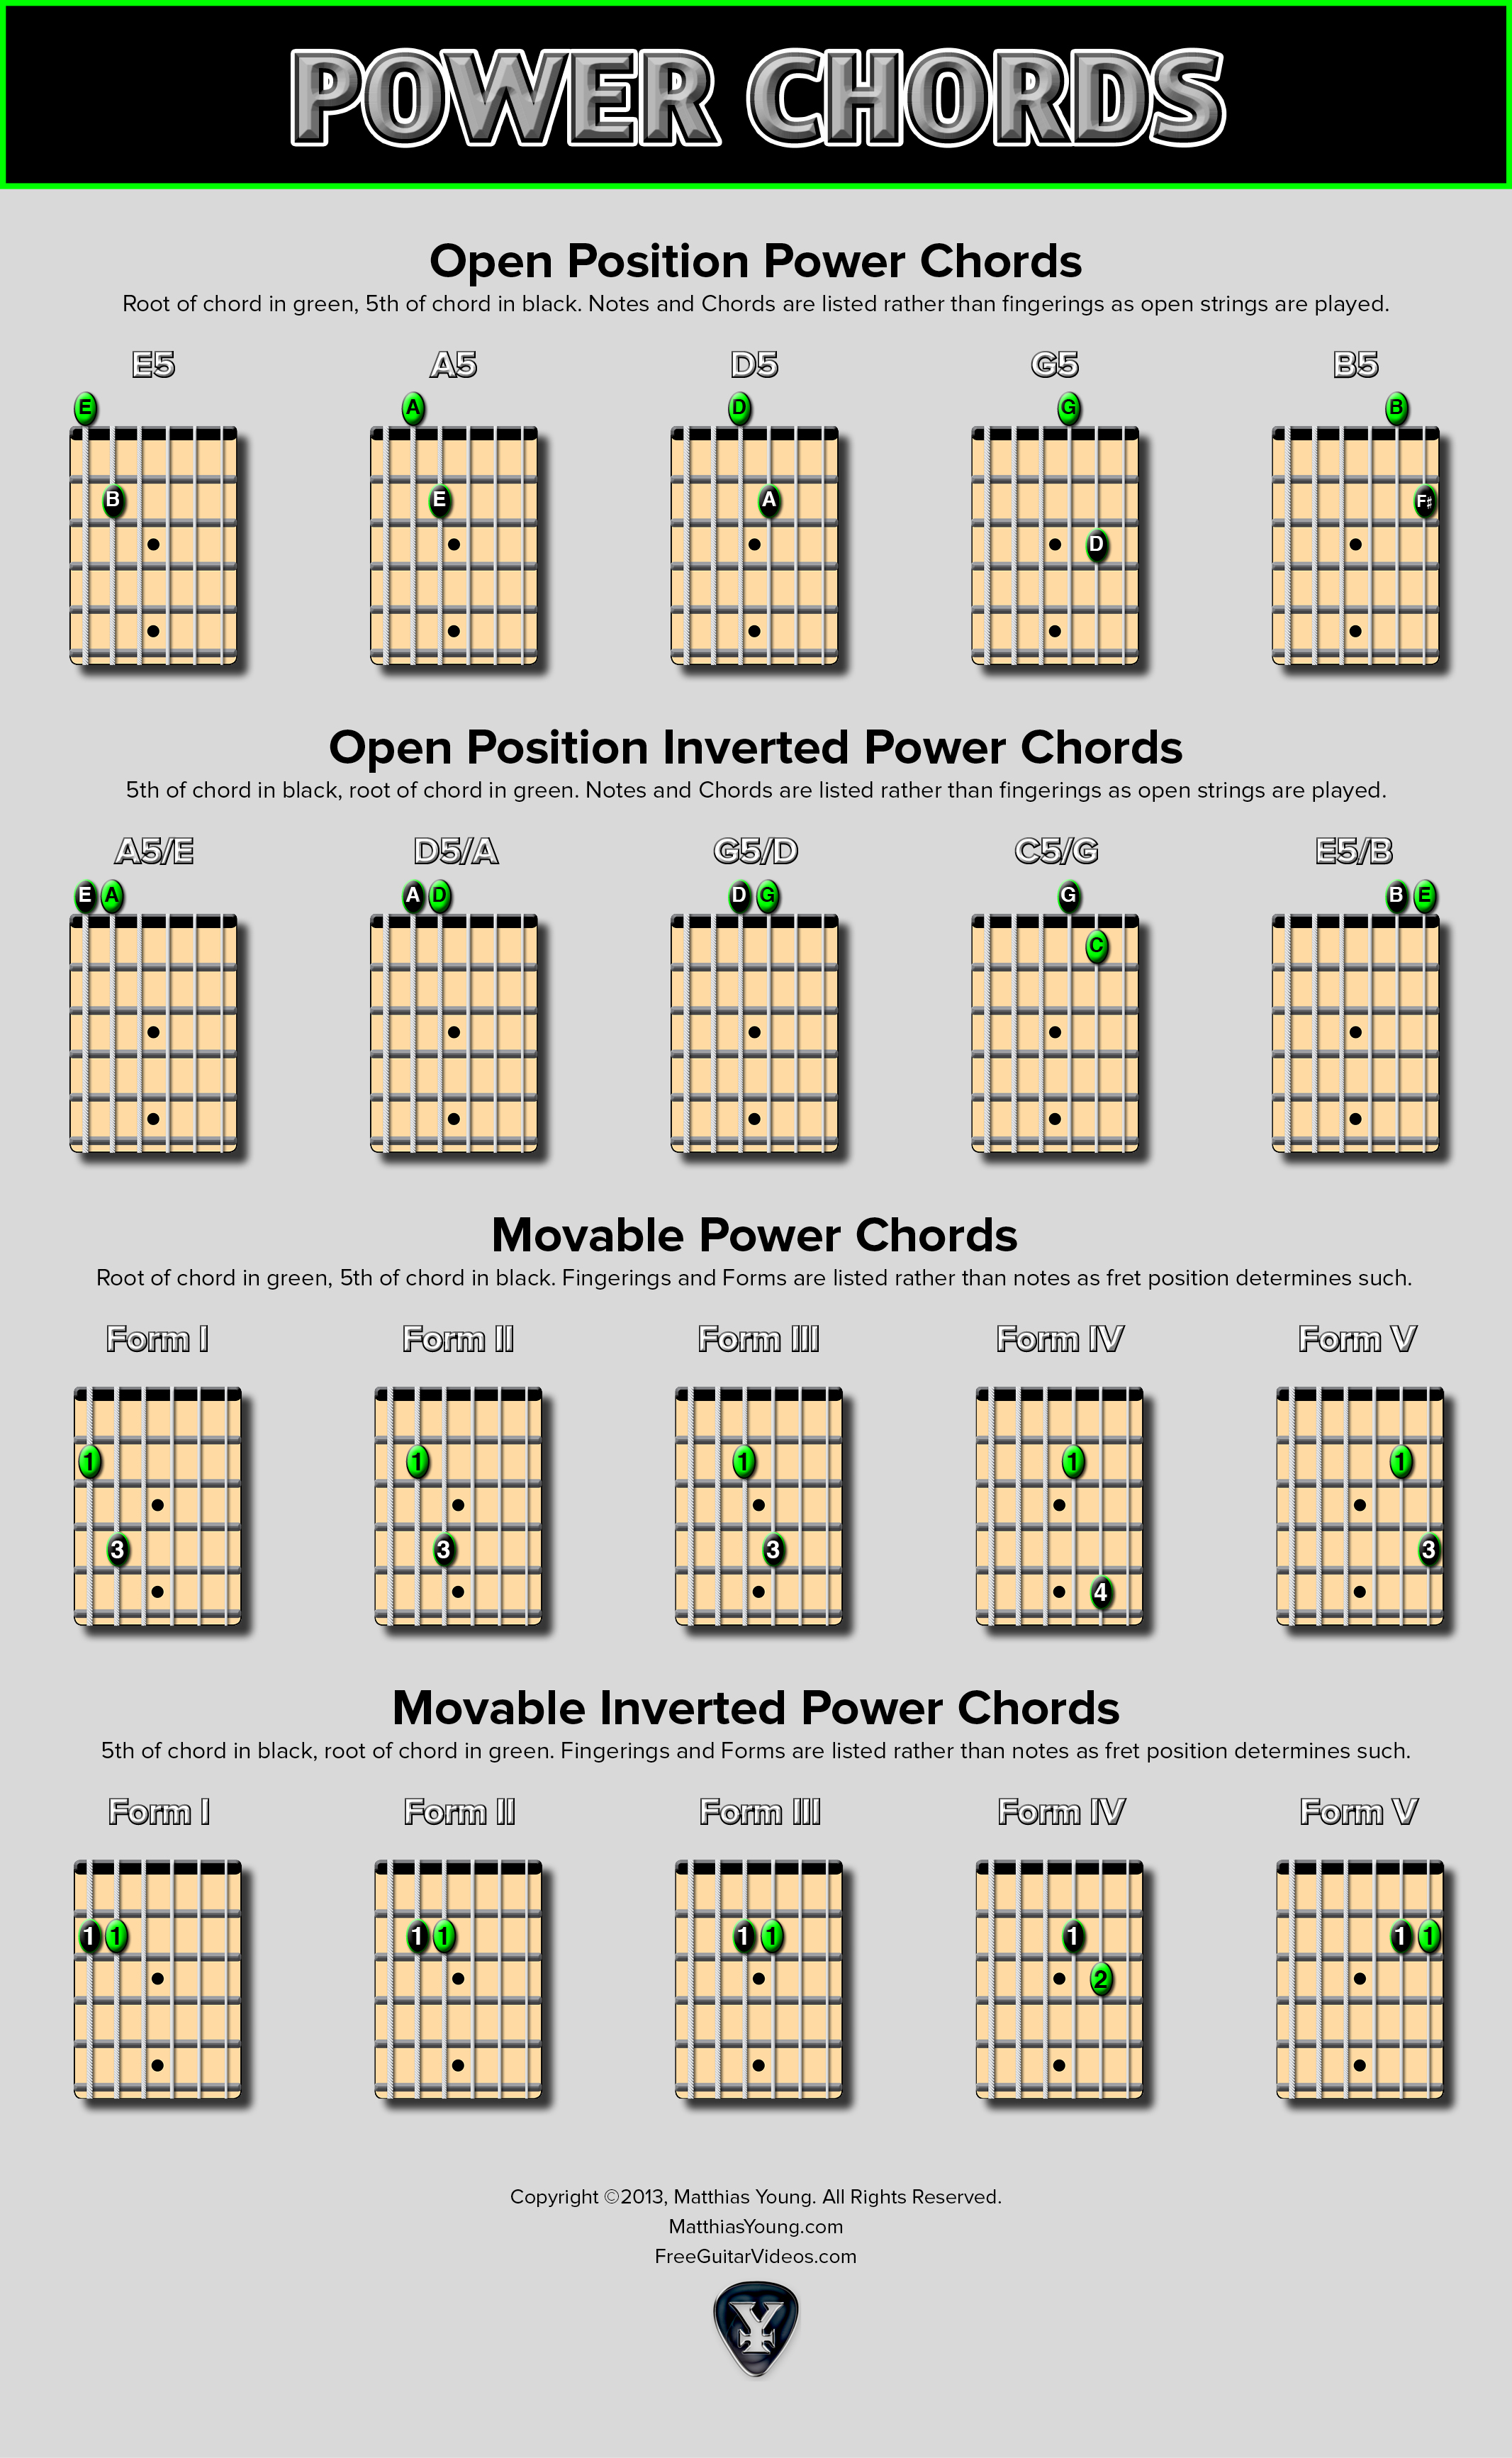 Moveable Chord Shapes Ukulele Diagram Circuit Wiring And Hub Ukulelediagram Power Chords Chart Open Rh Guitartreats Com Print Basic